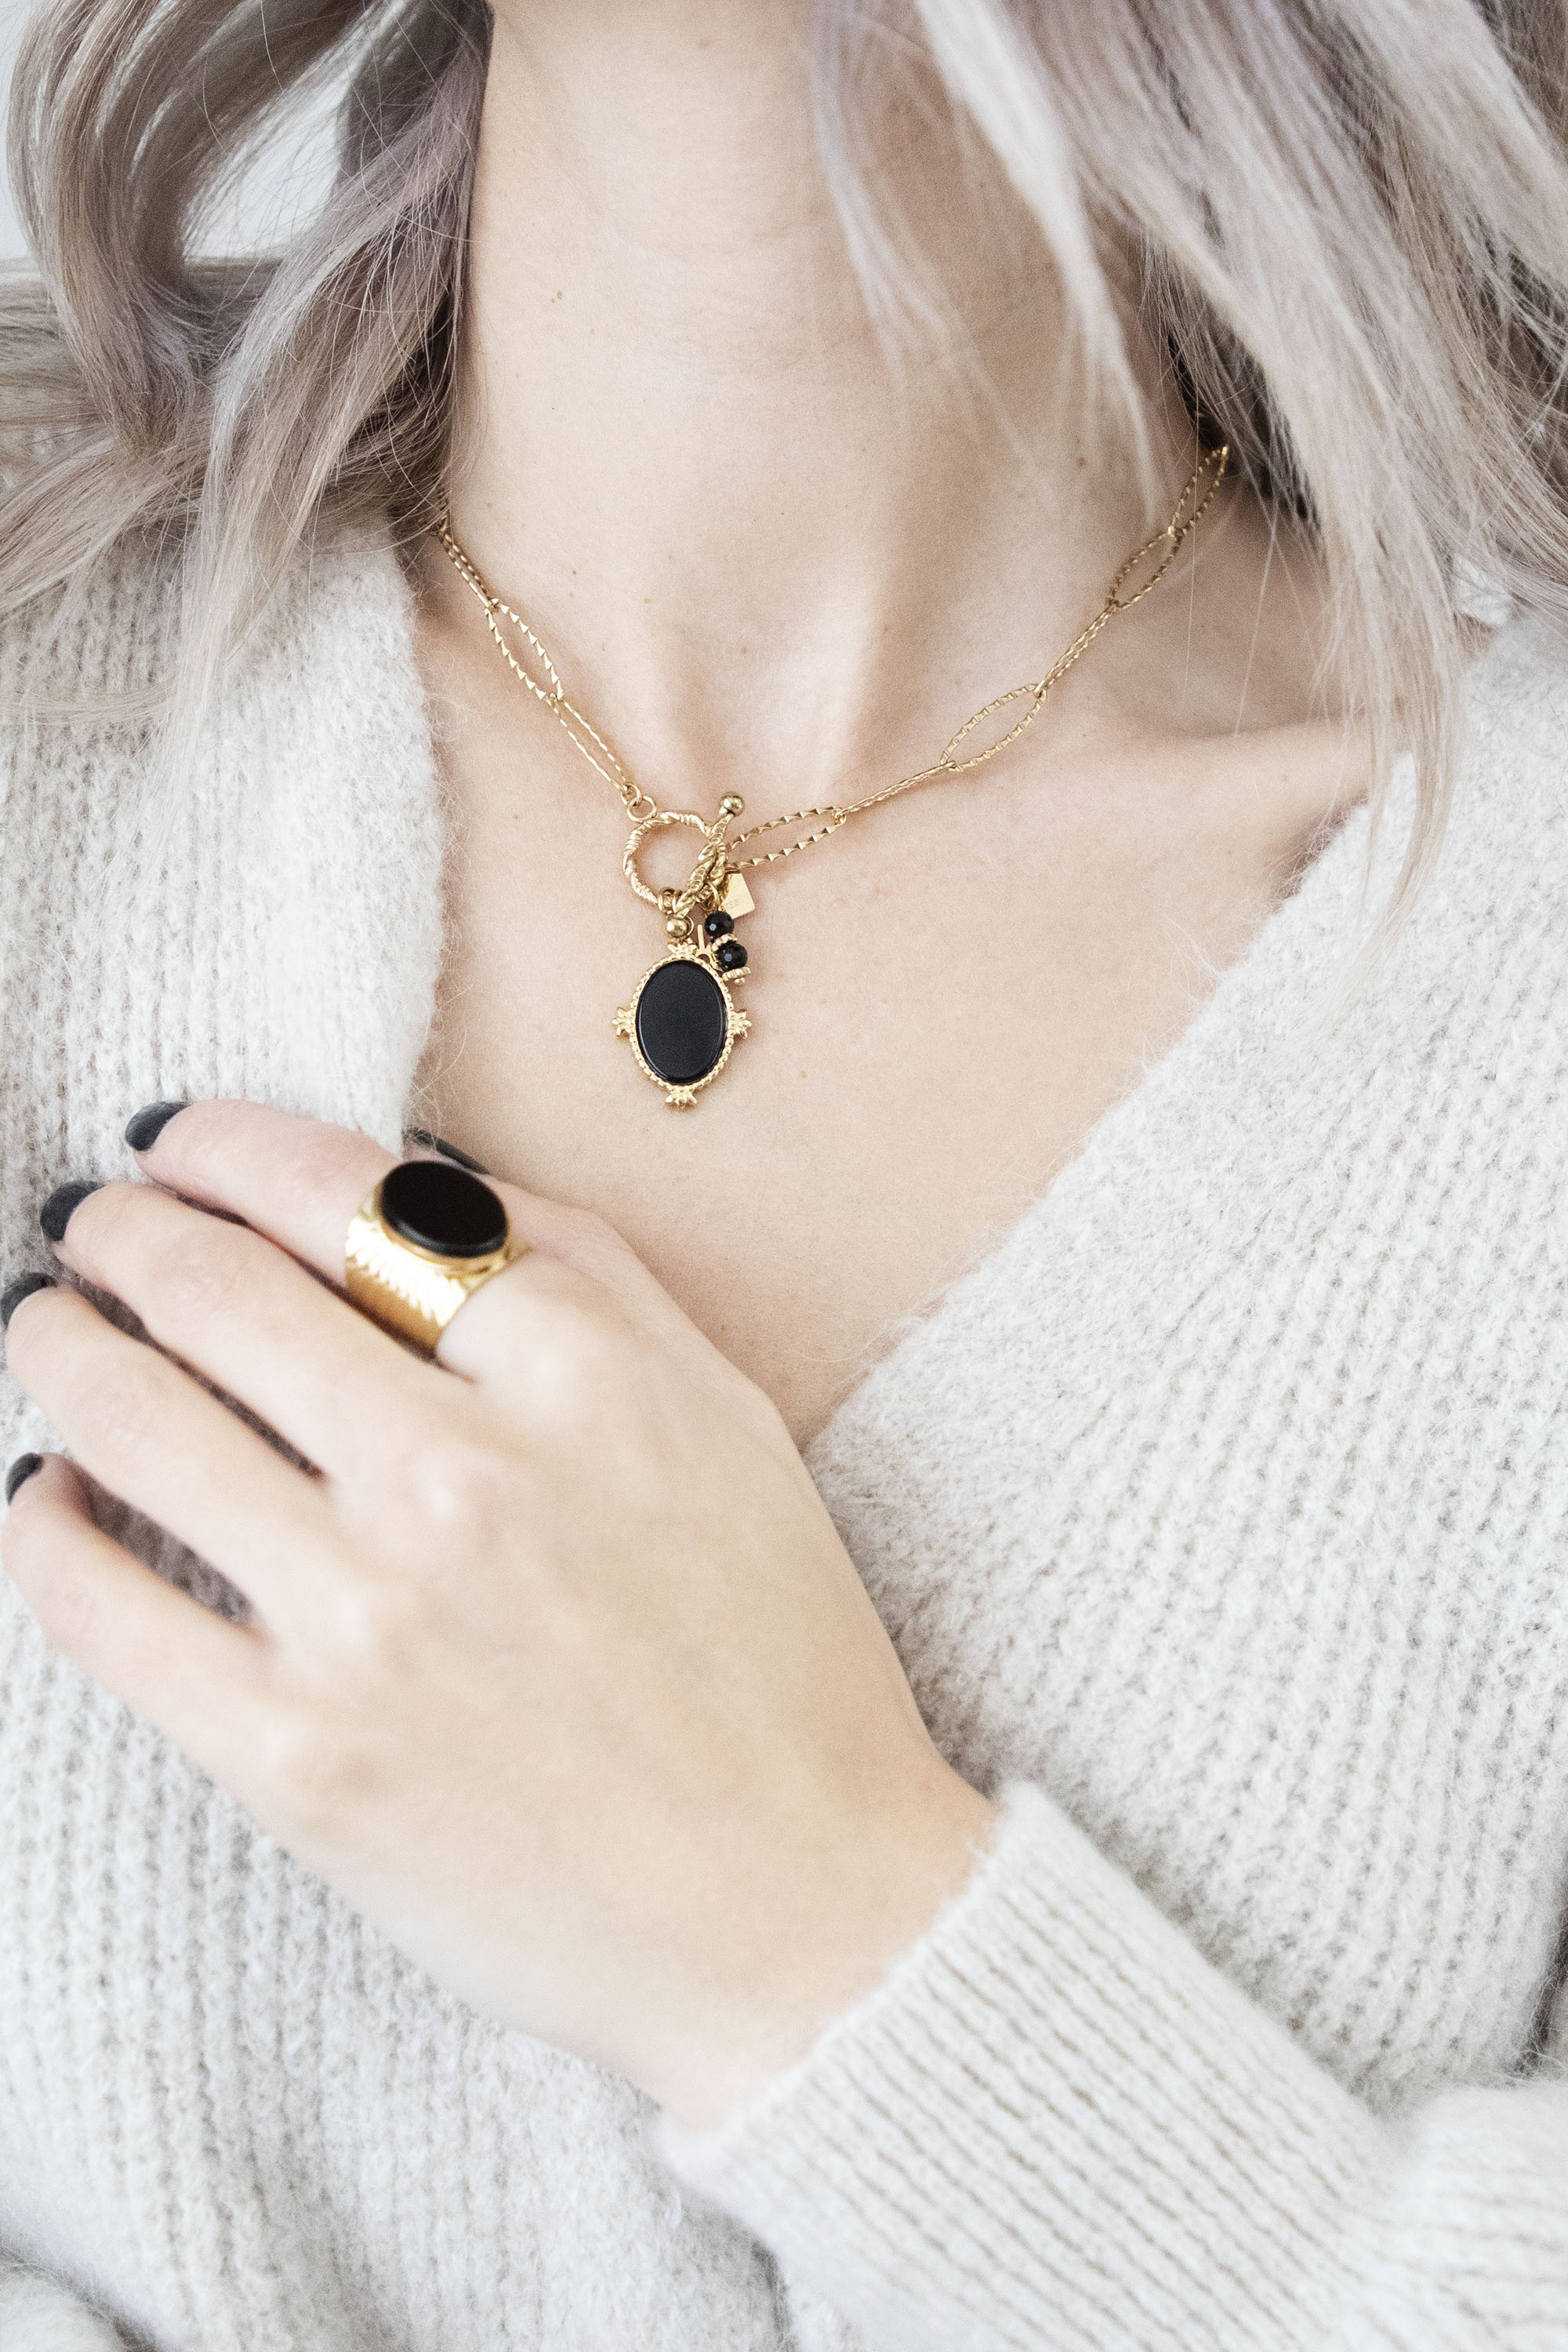 Mirror Check Black/Gold - Ketting